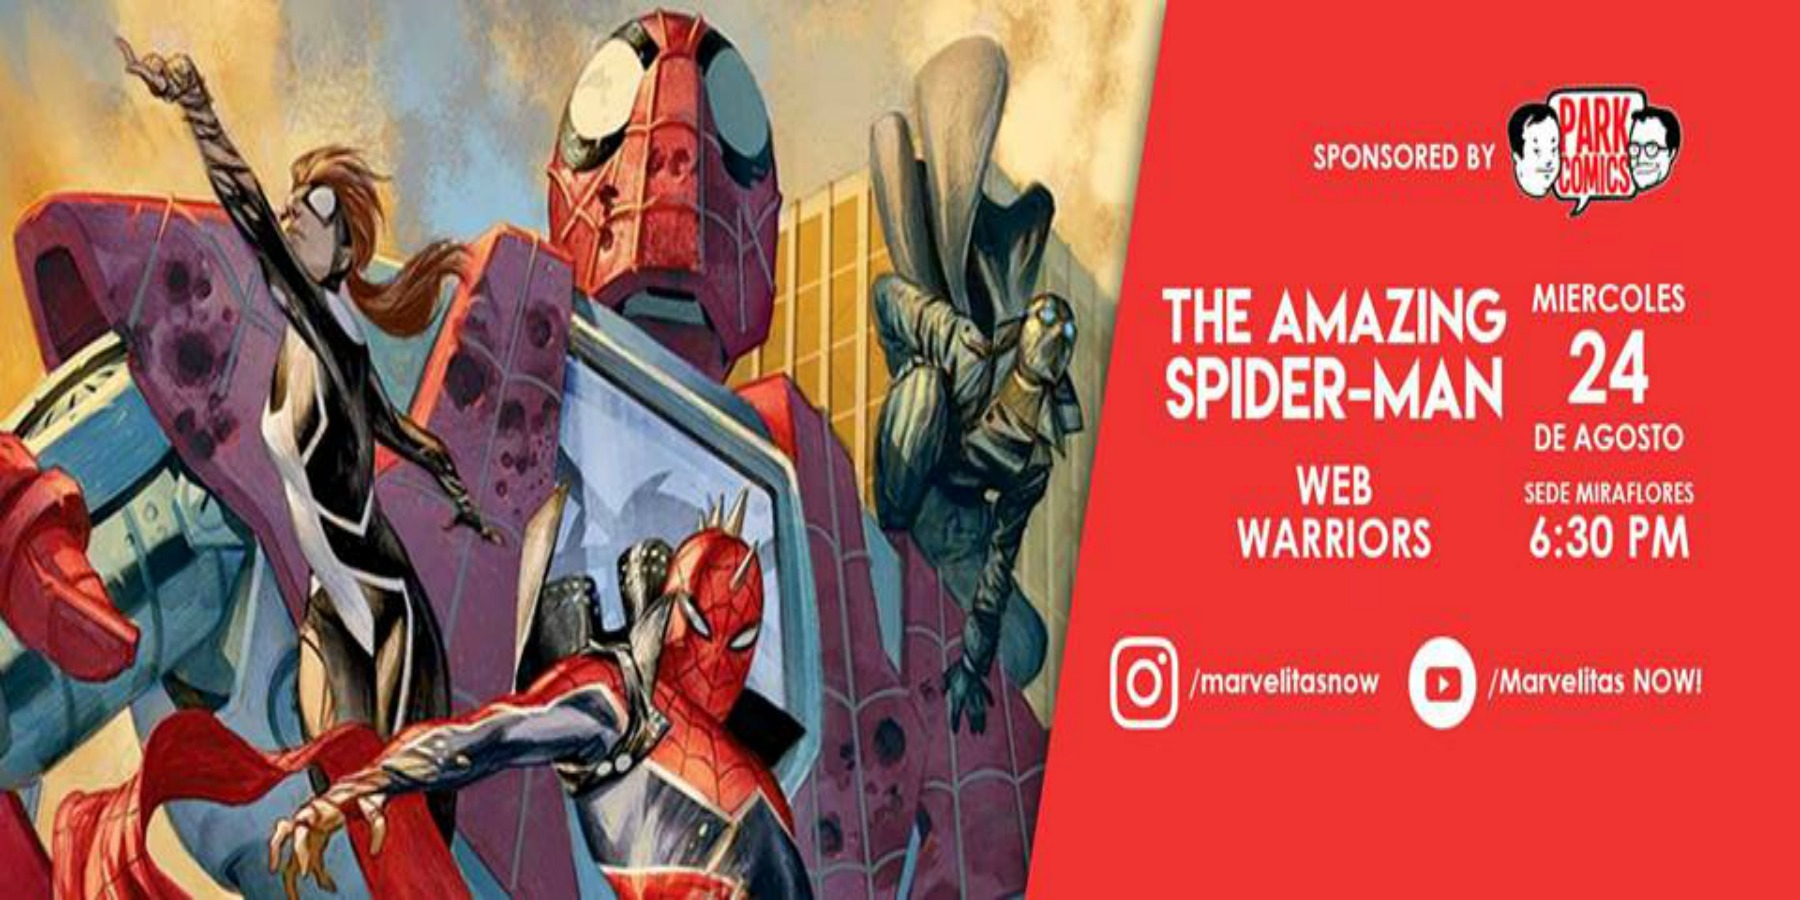 Spider Man: Web Warriors | ICPNA de Miraflores